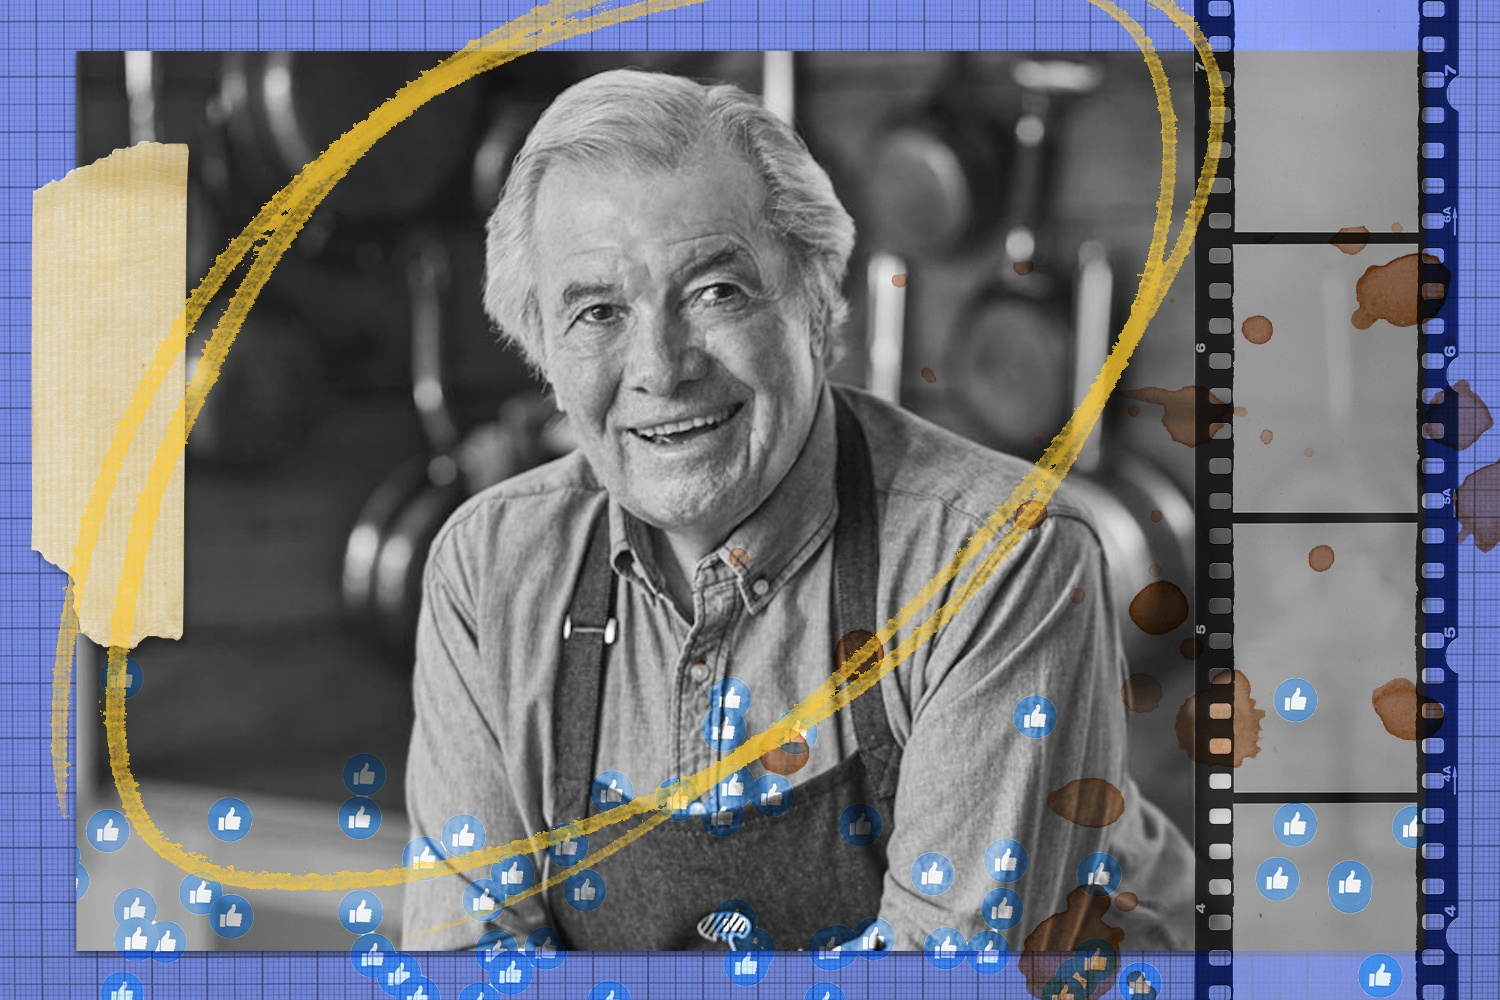 Jacques Pépin feature image collage for Rewrites. Black and white photo with tape, pastel mark, Facebook likes, film, and food stains on blue graph background. June 2021